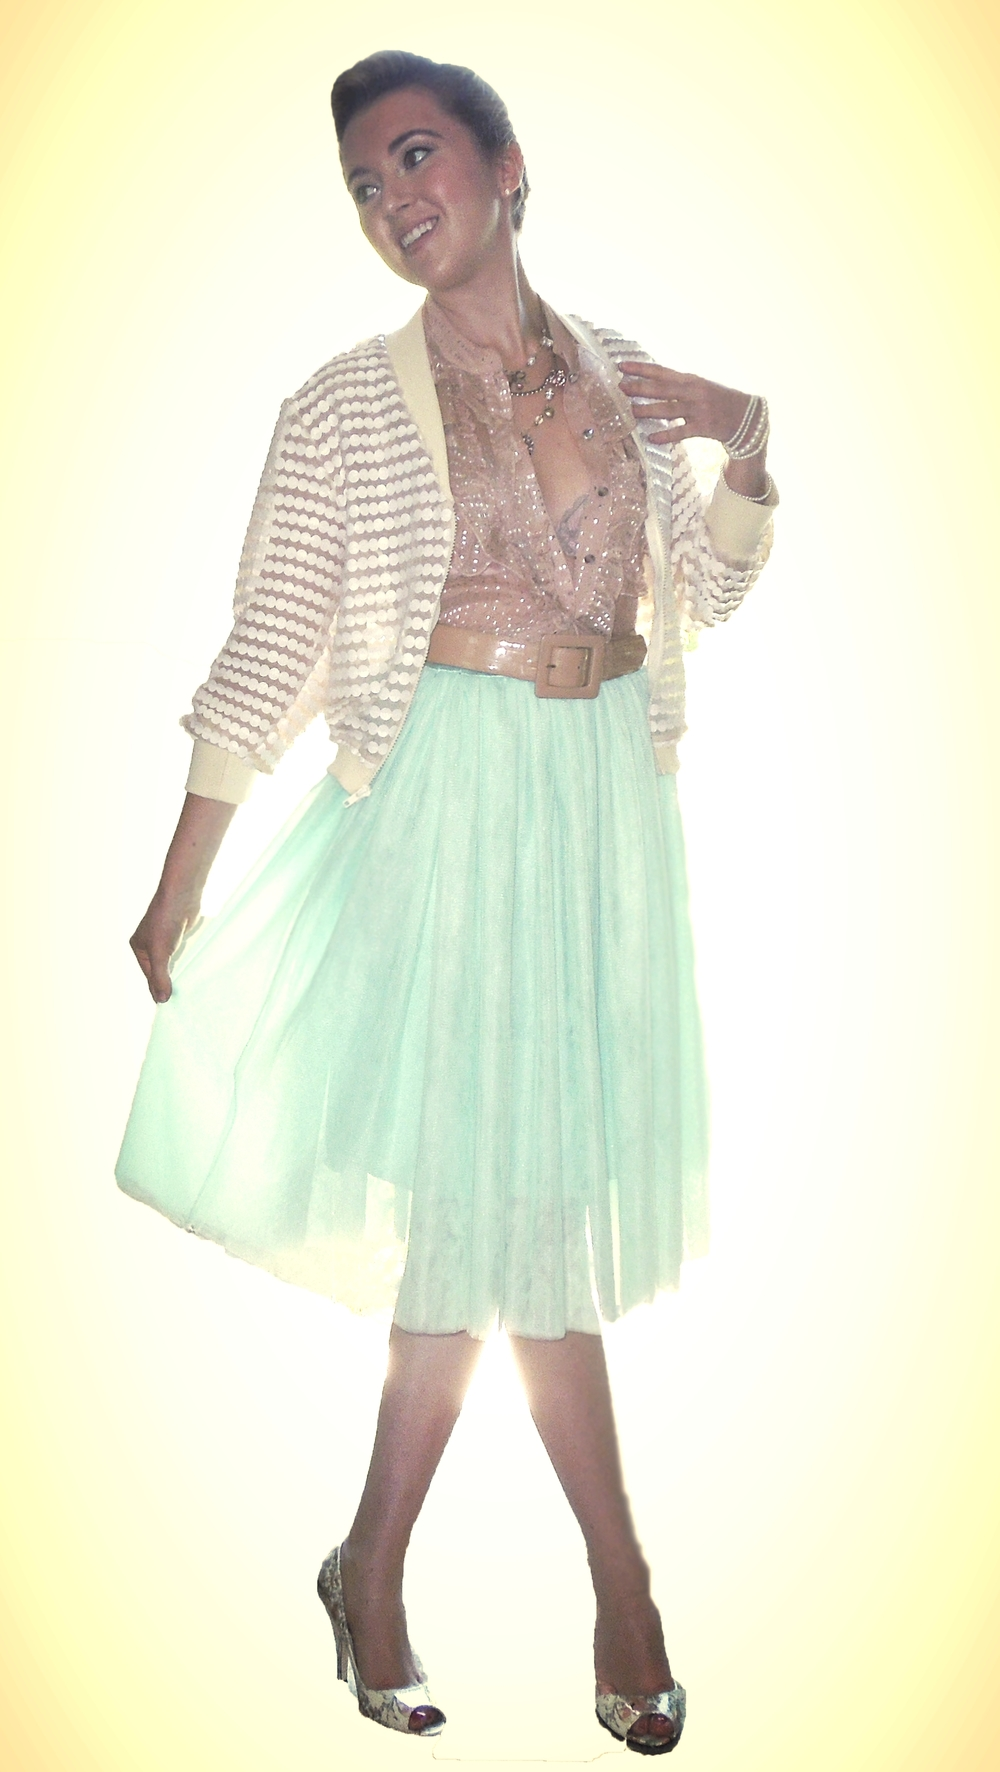 Jacket: The Dotty Jacket  Top & Skirt: Vintage finds  Shoes: Steve Madden  Belt: Nordstrom